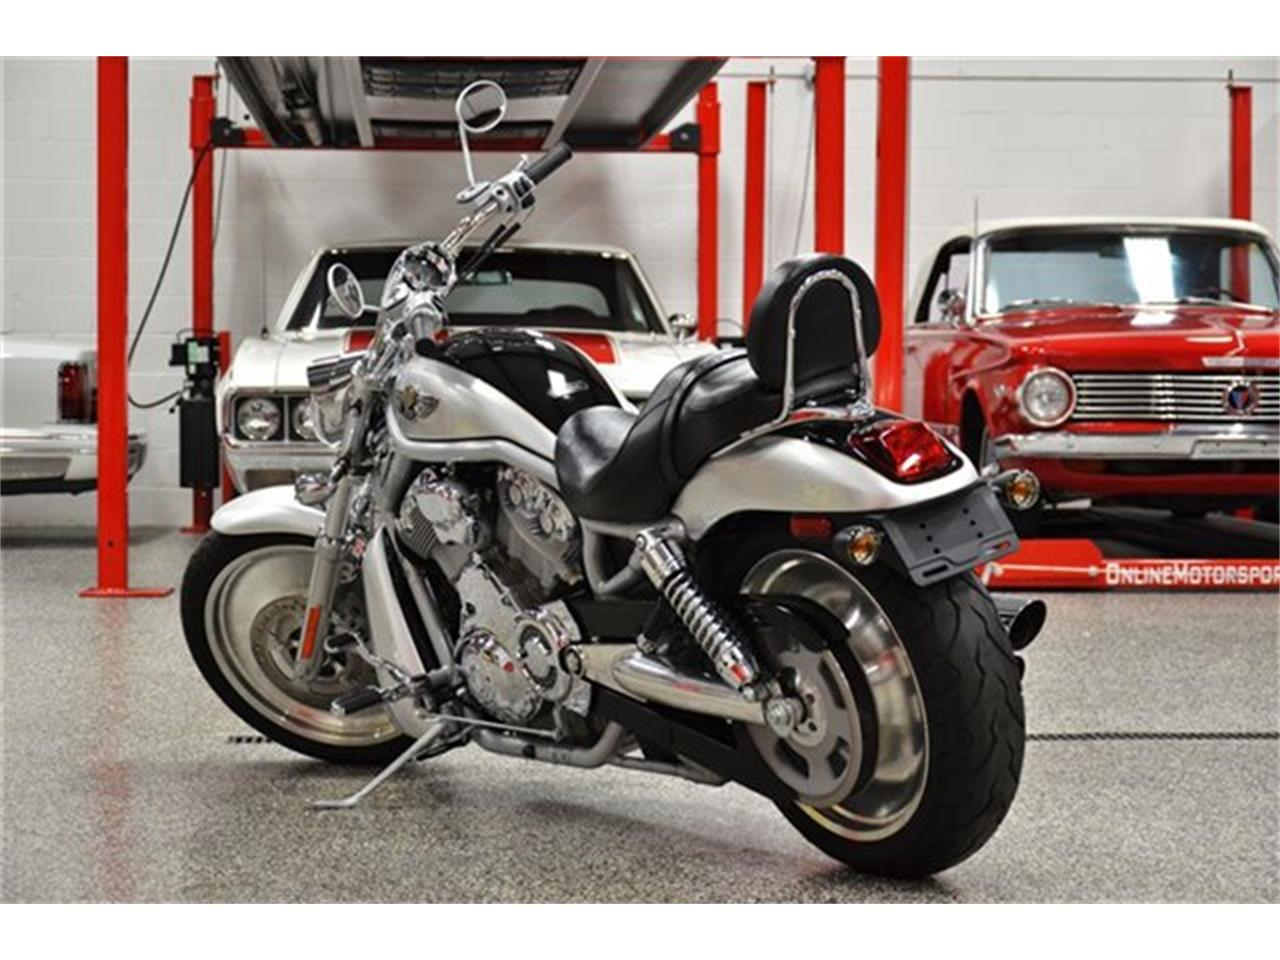 2003 Harley-Davidson VRSC for sale in Plainfield, IL – photo 9